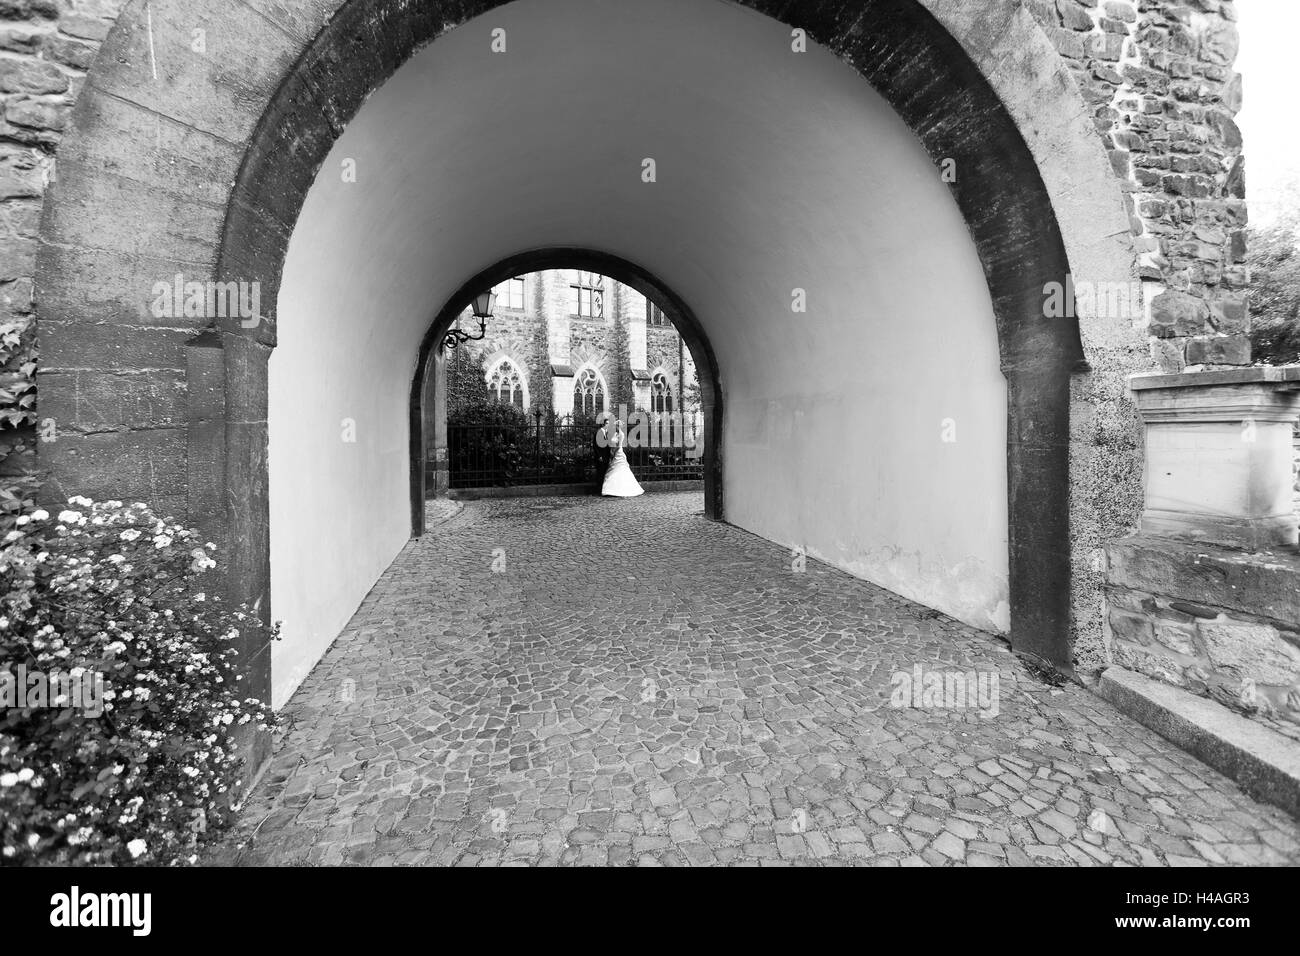 Bride and groom in ecclesiastical round arch, b/w - Stock Image